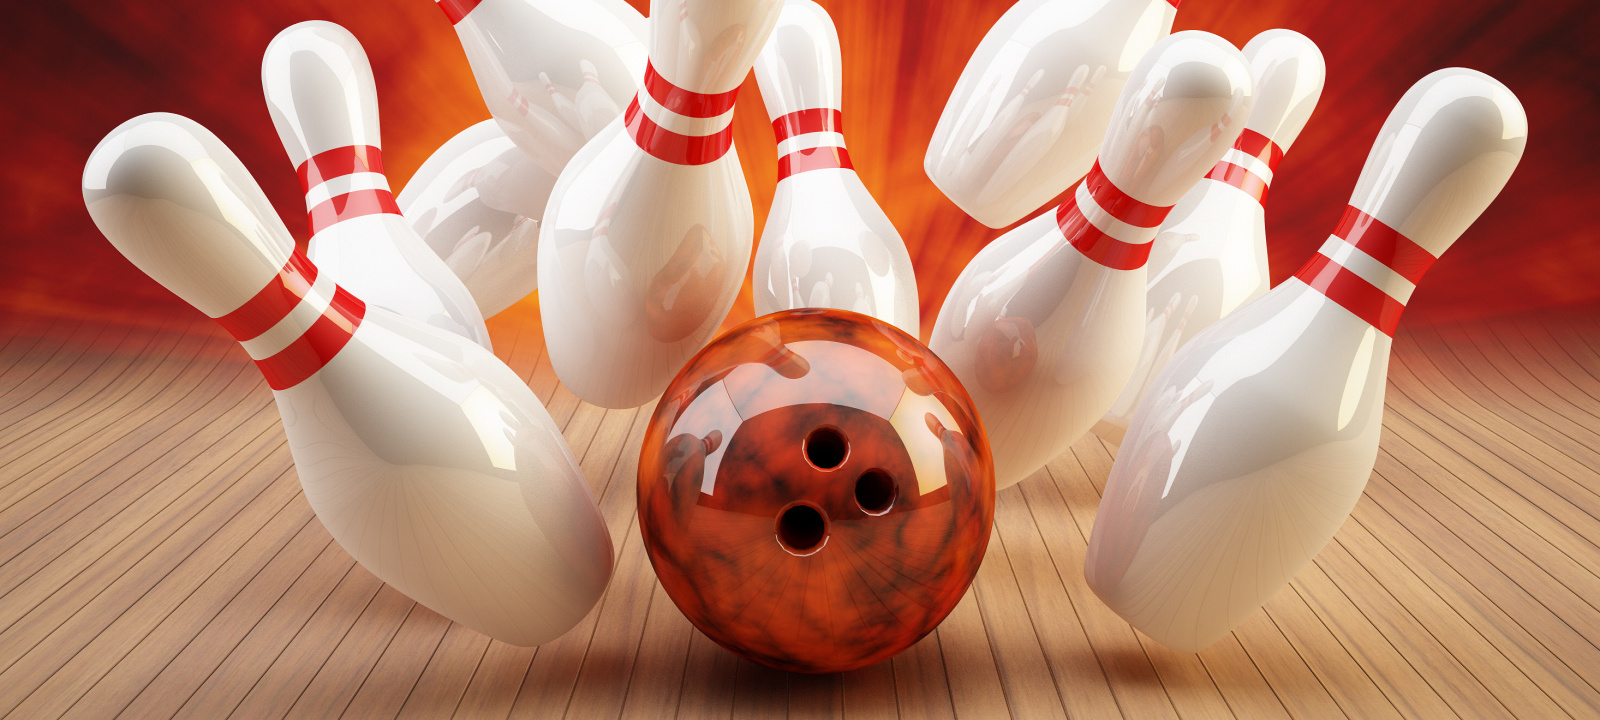 HQ Bowling Wallpapers | File 437.1Kb